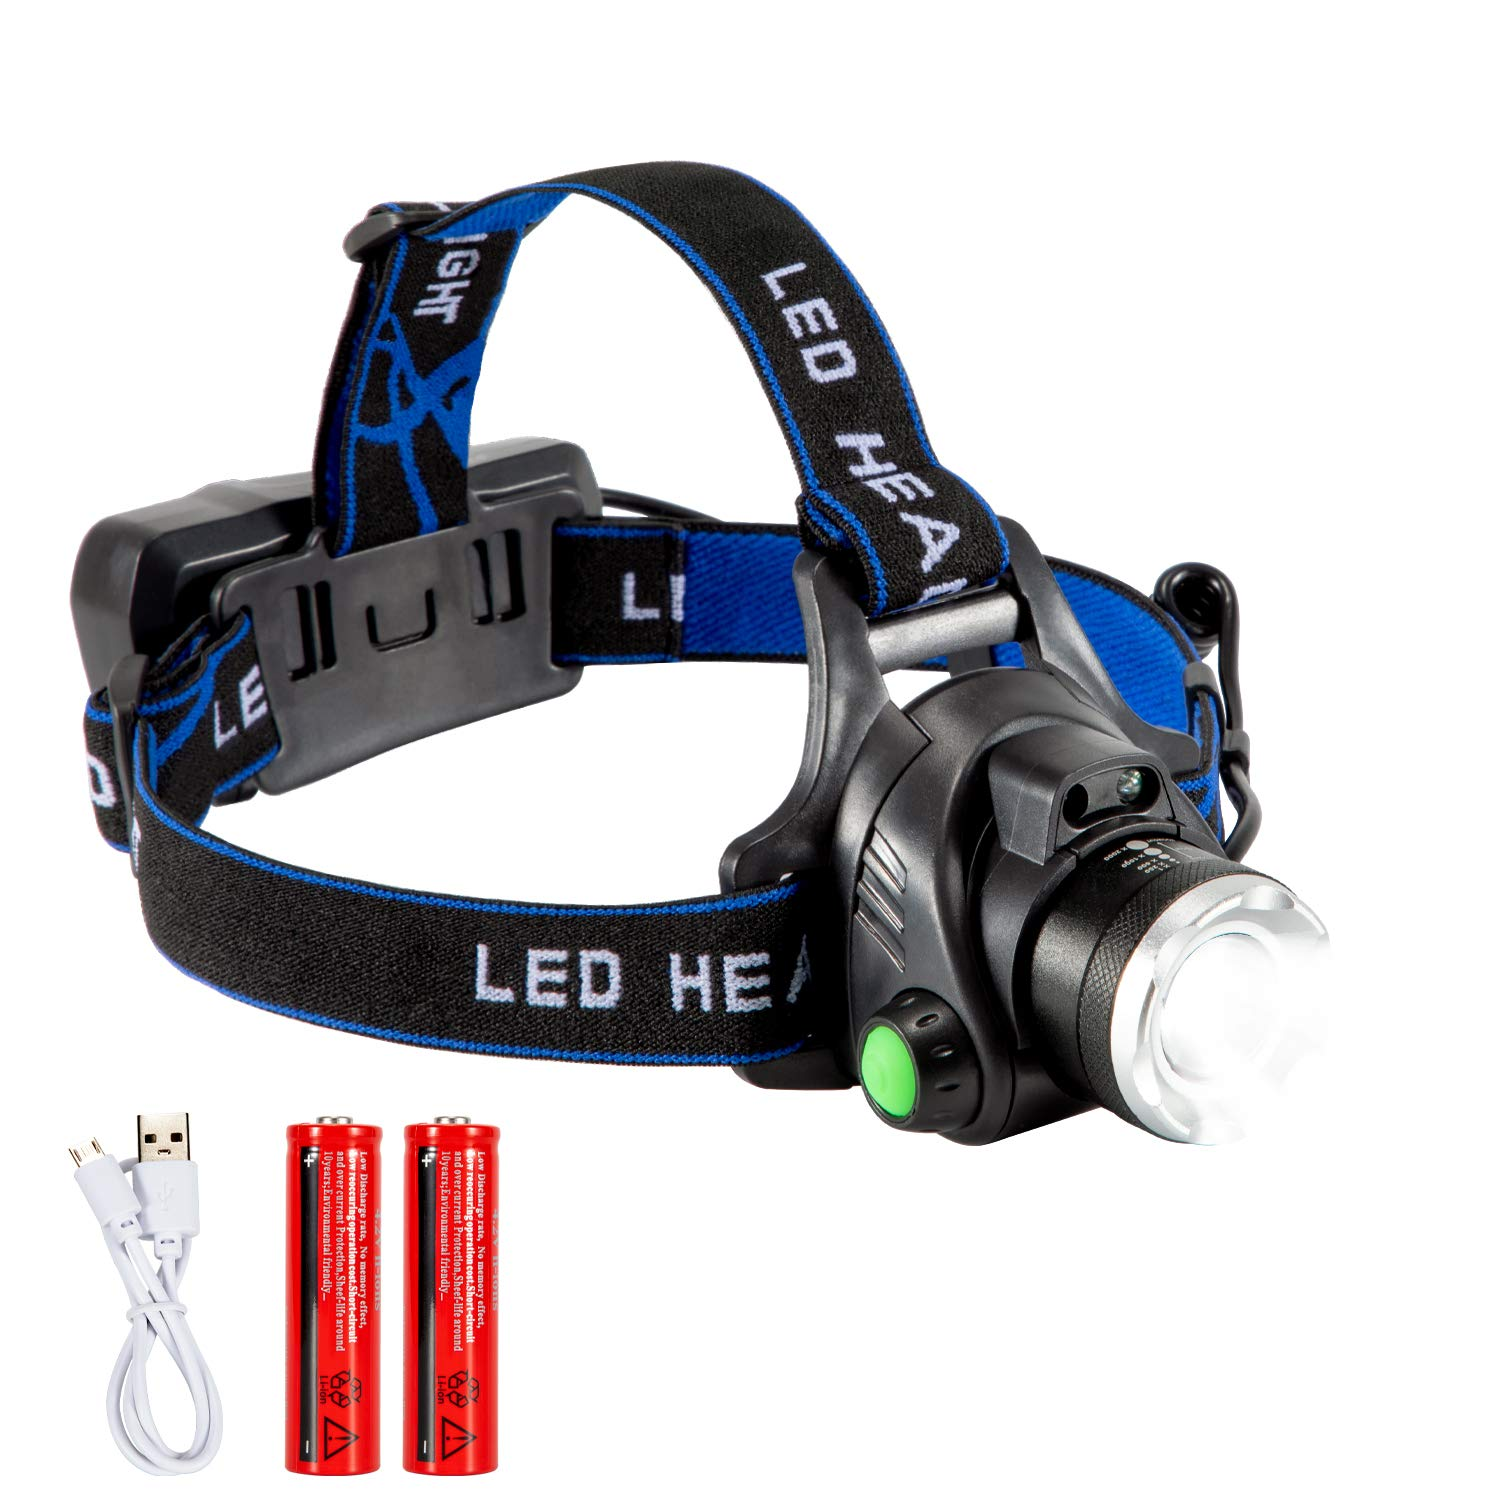 Headlamp USB Rechargeable Flashlight Smart Wave Sensor for Hands Free, Waterproof, Bright Light,Retractable lamp head, Adjustable headband,Lightweight, Perfect for outdoors (Blue)